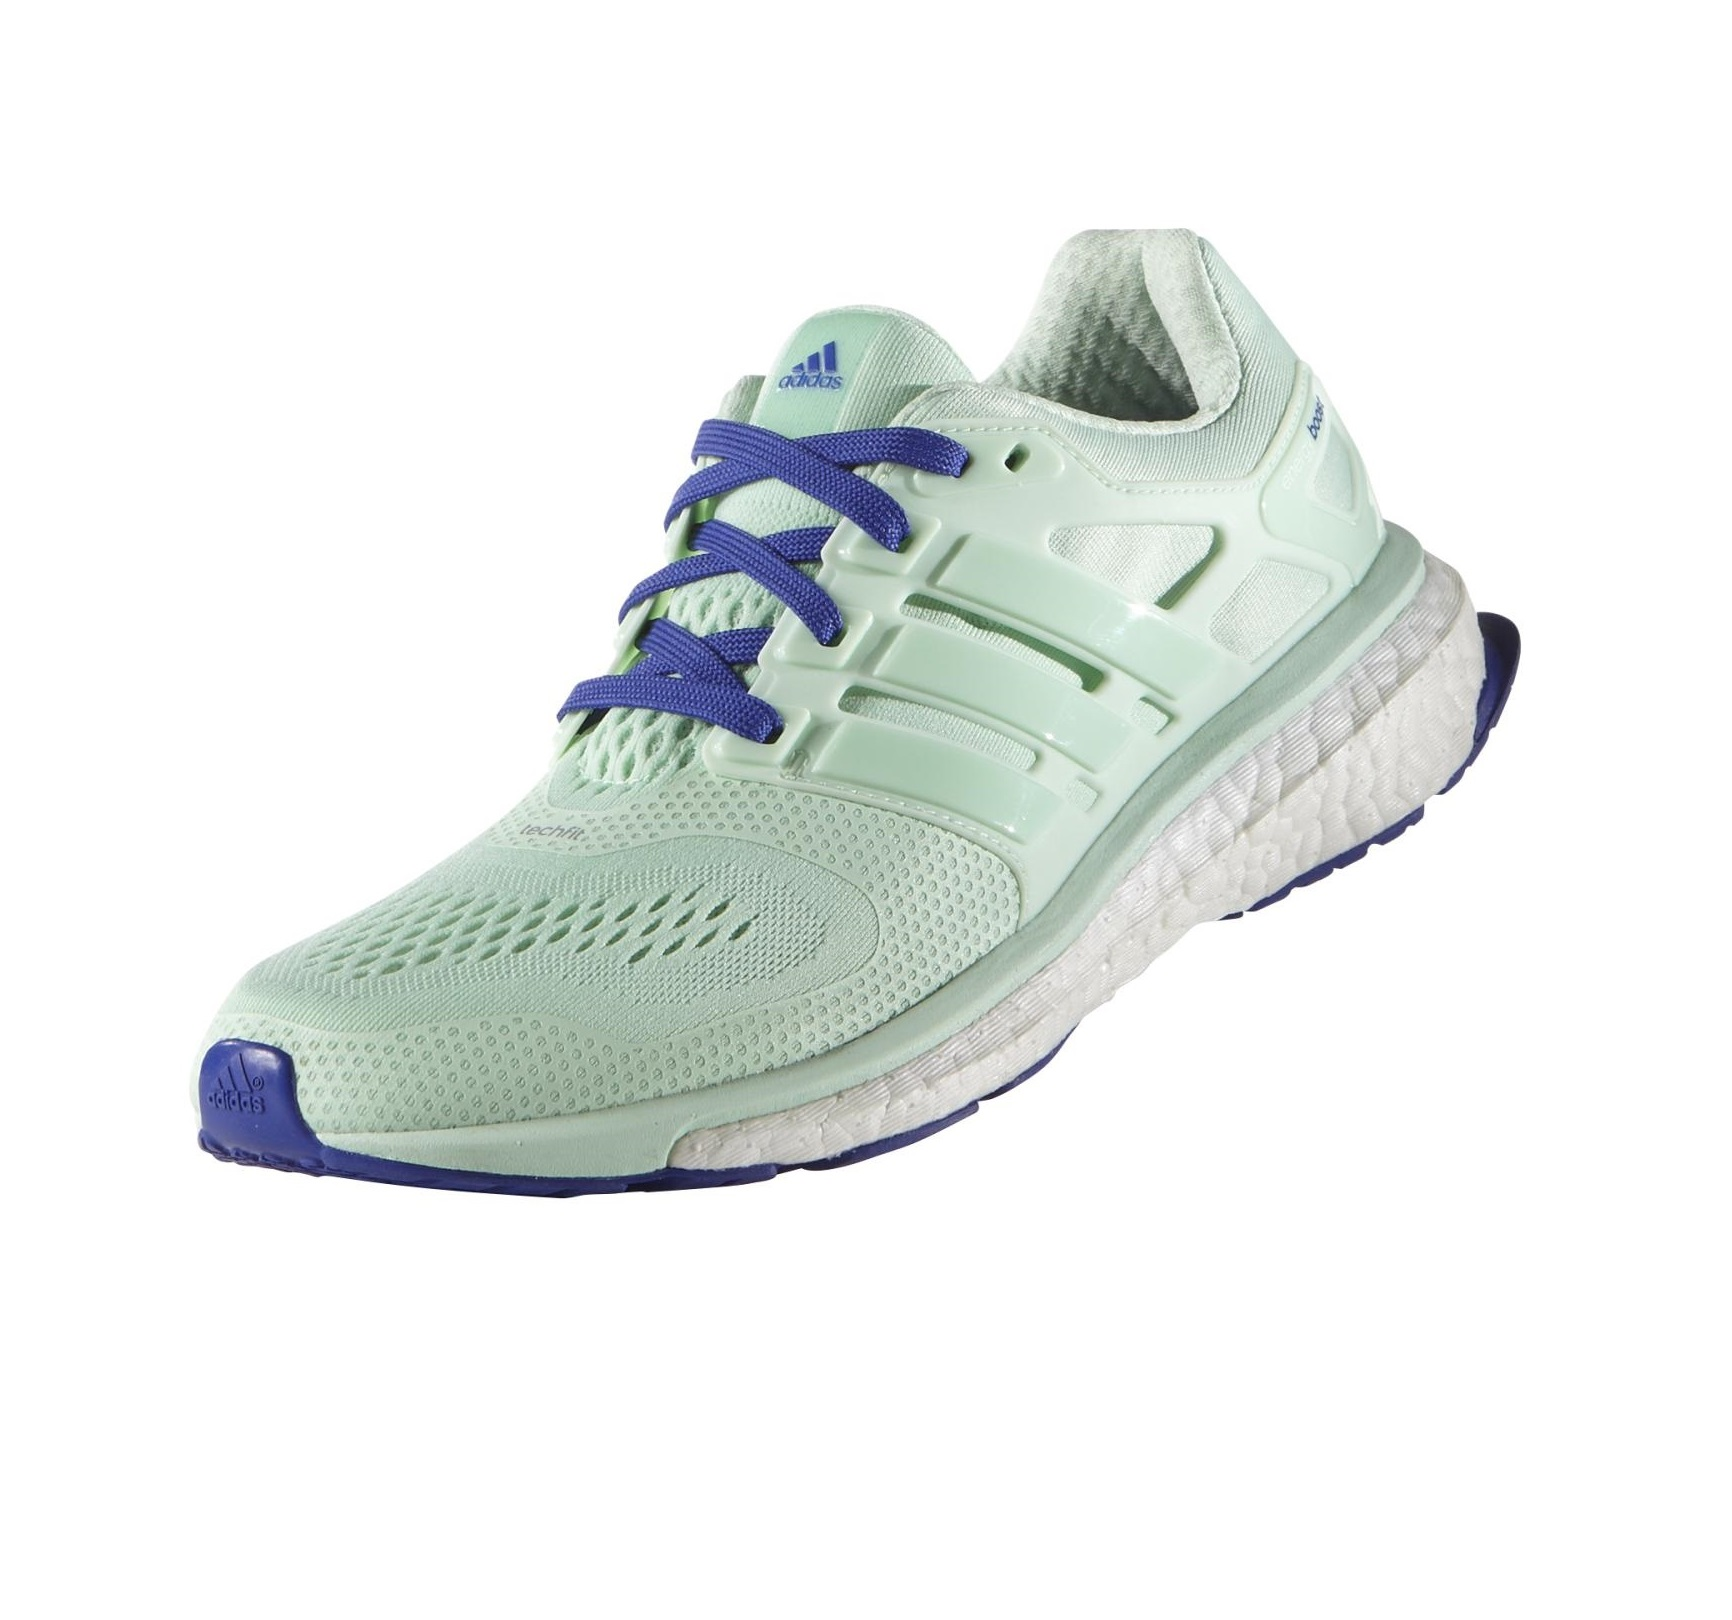 reputable site 6d825 b38fa ... buty adidas Energy Boost S83147 ...